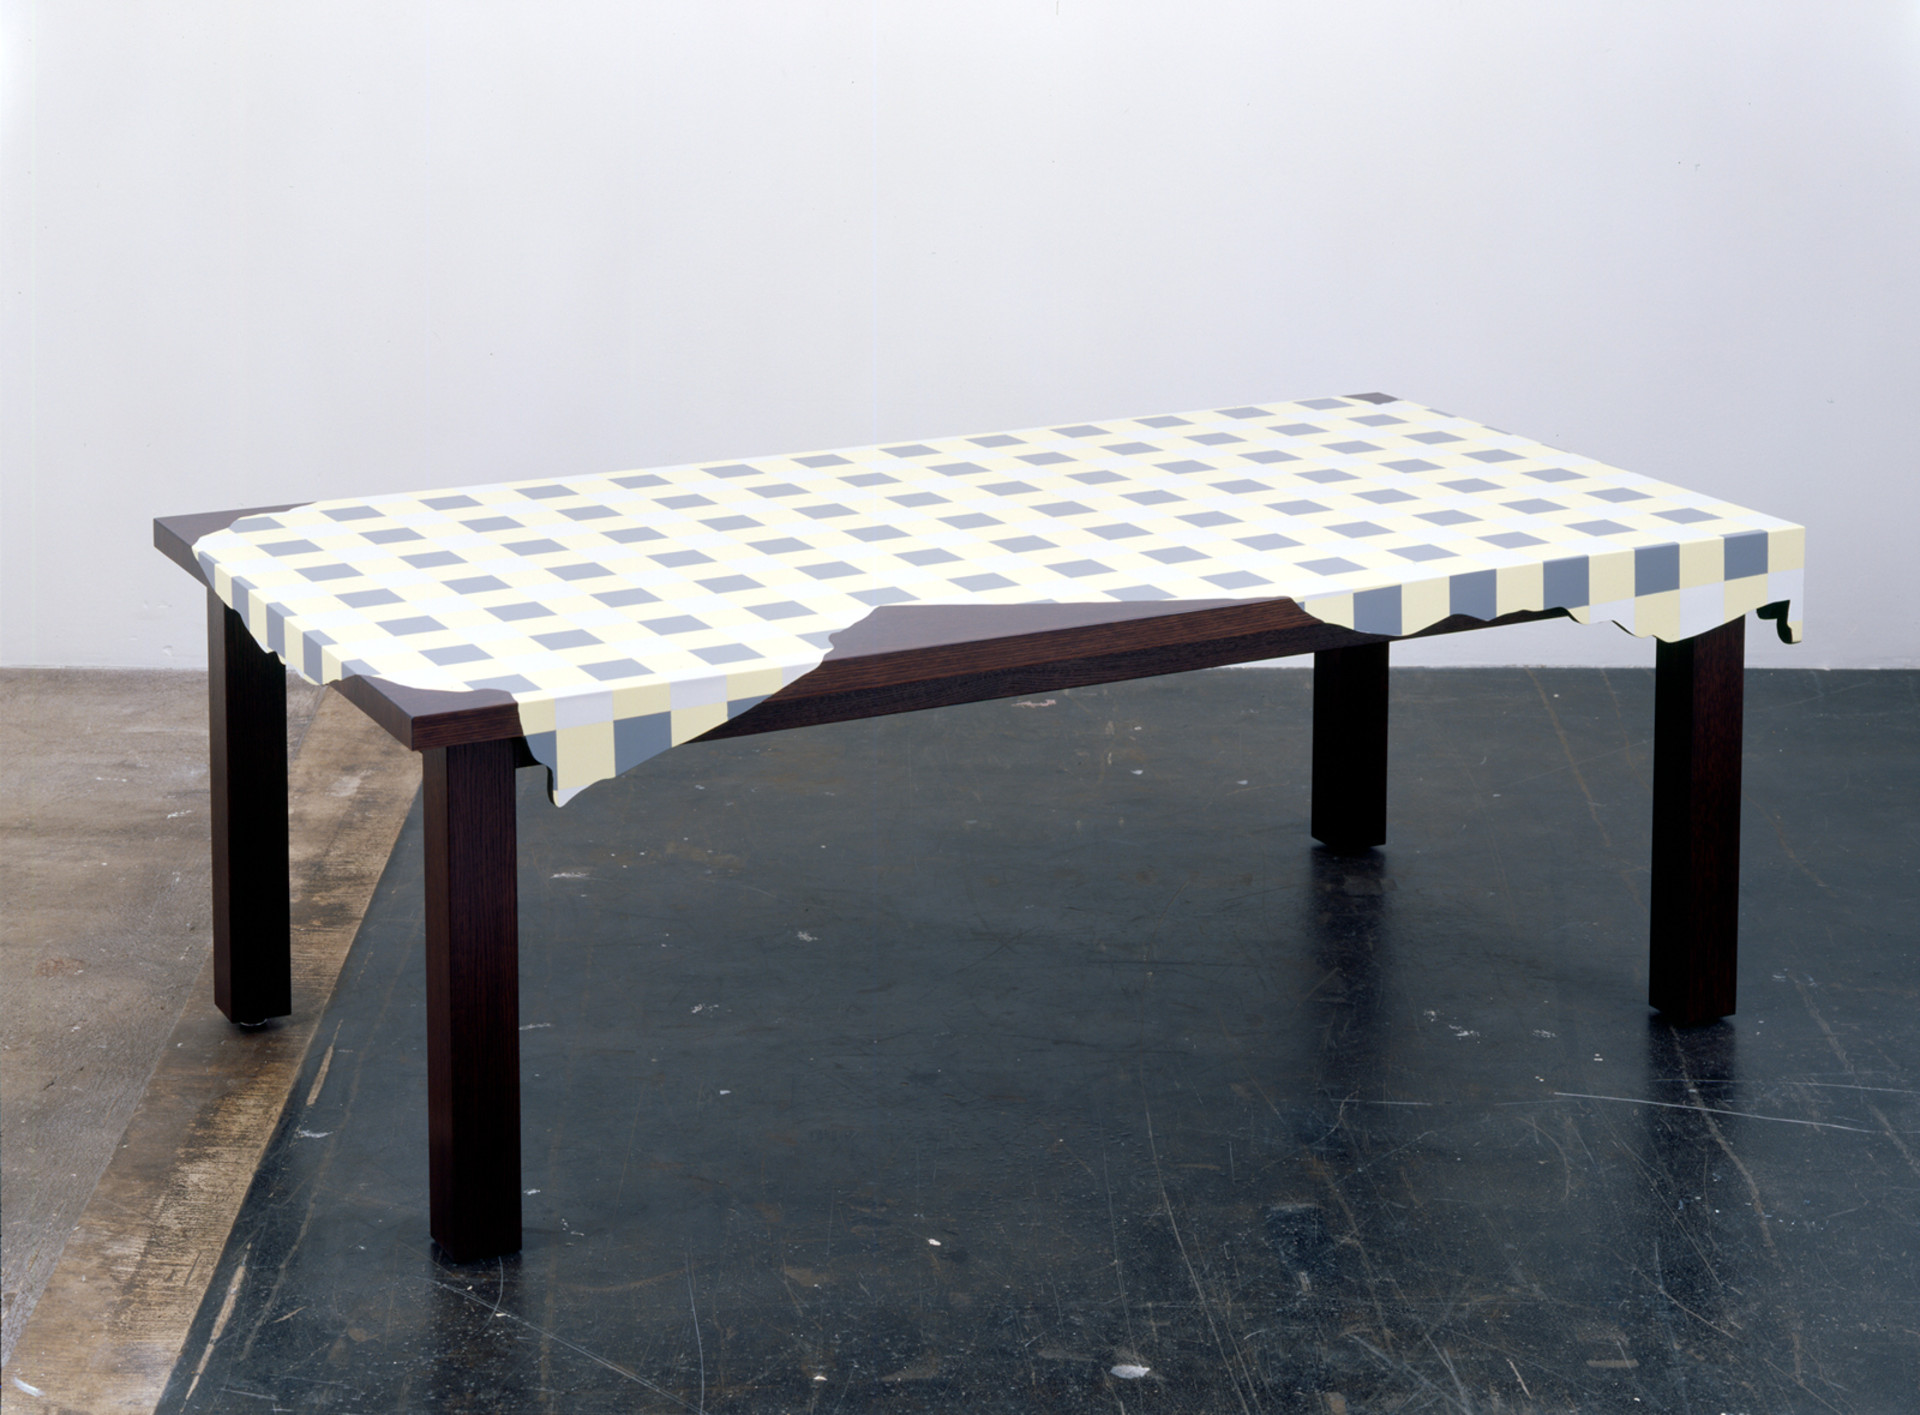 Untitled (Table)